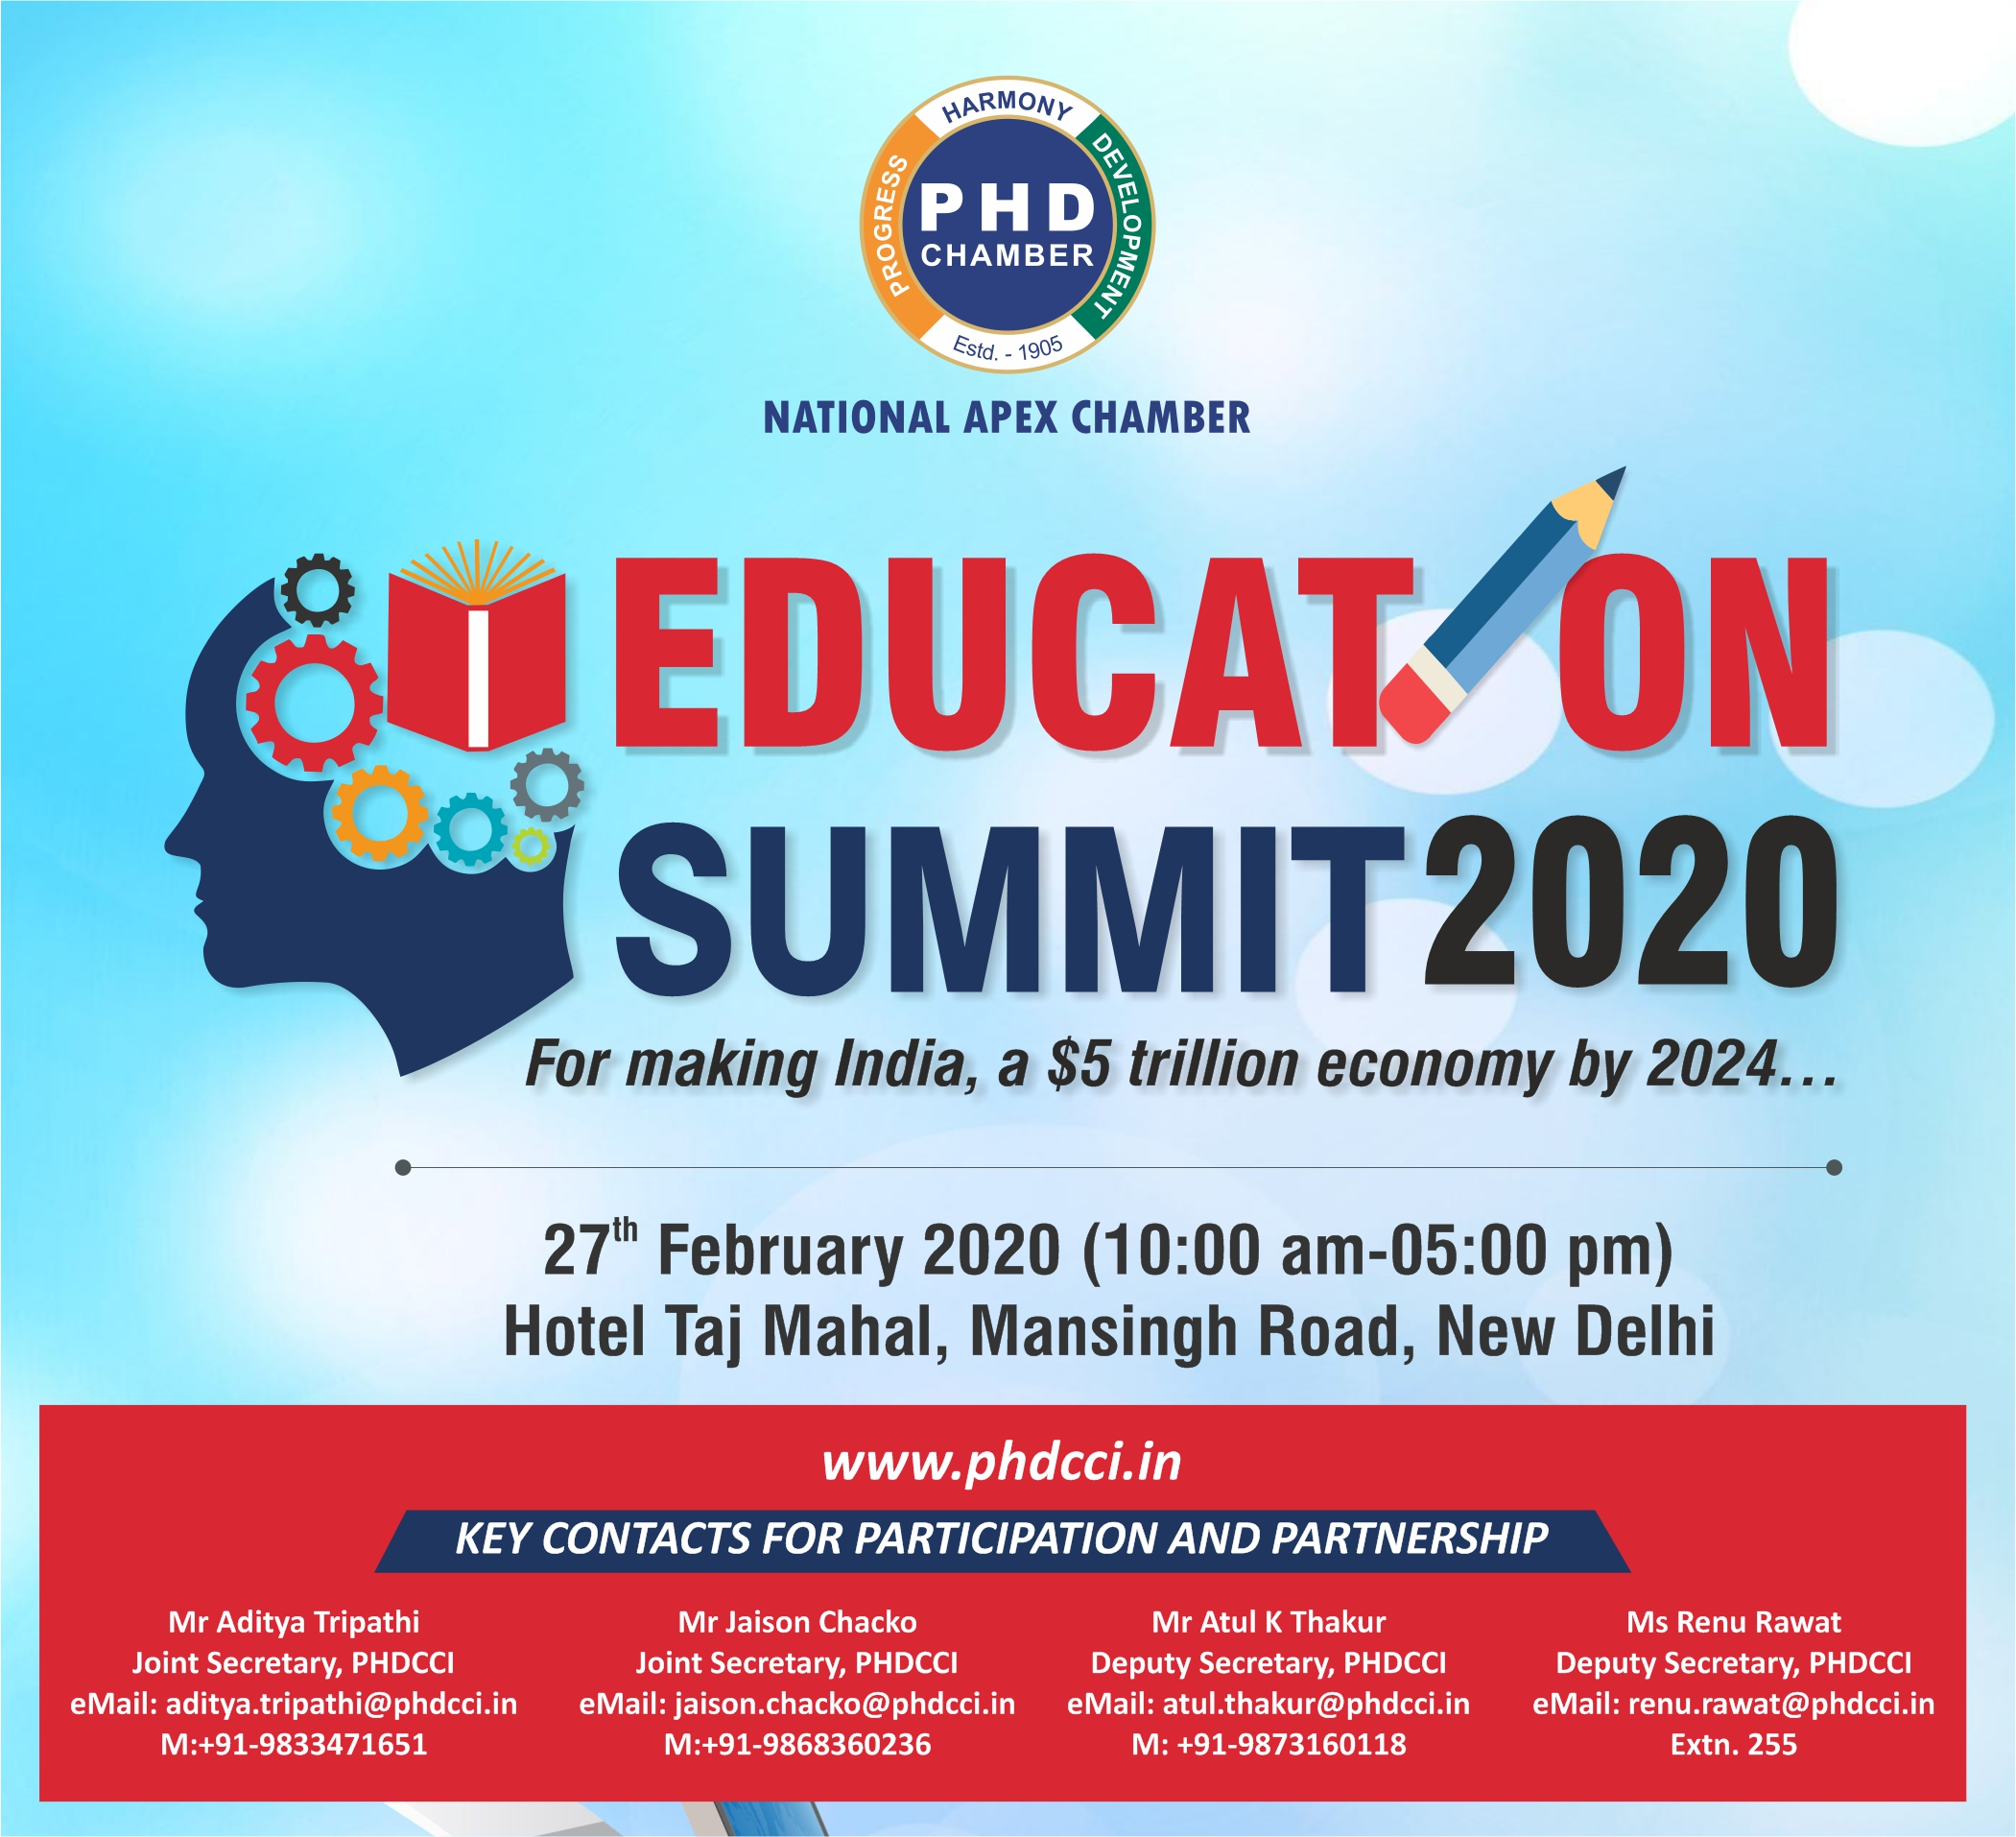 PHDCCI Education Summit 2020